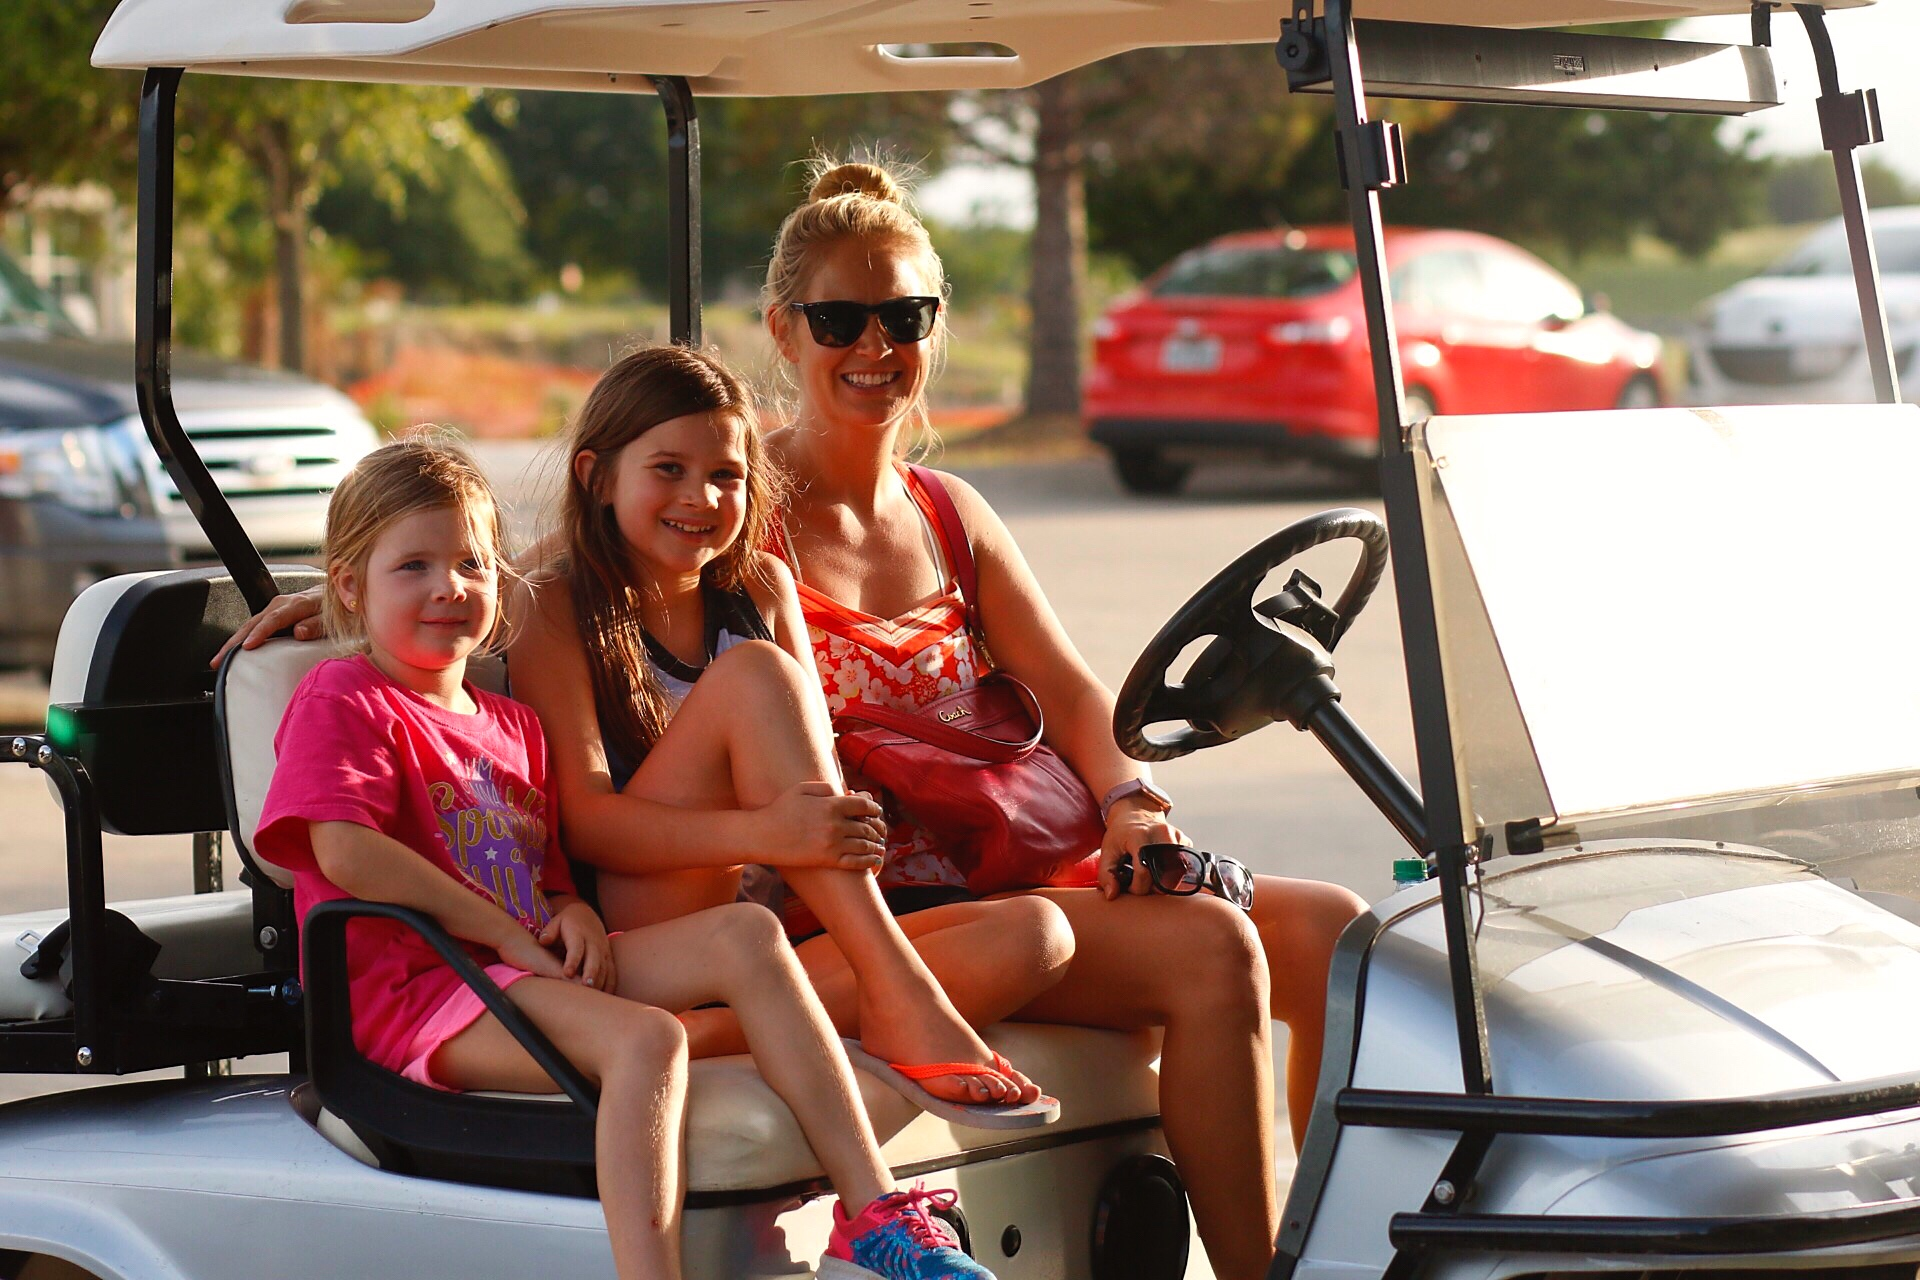 golf cart mckinney tx, recreational insurance, insurance for personal toys